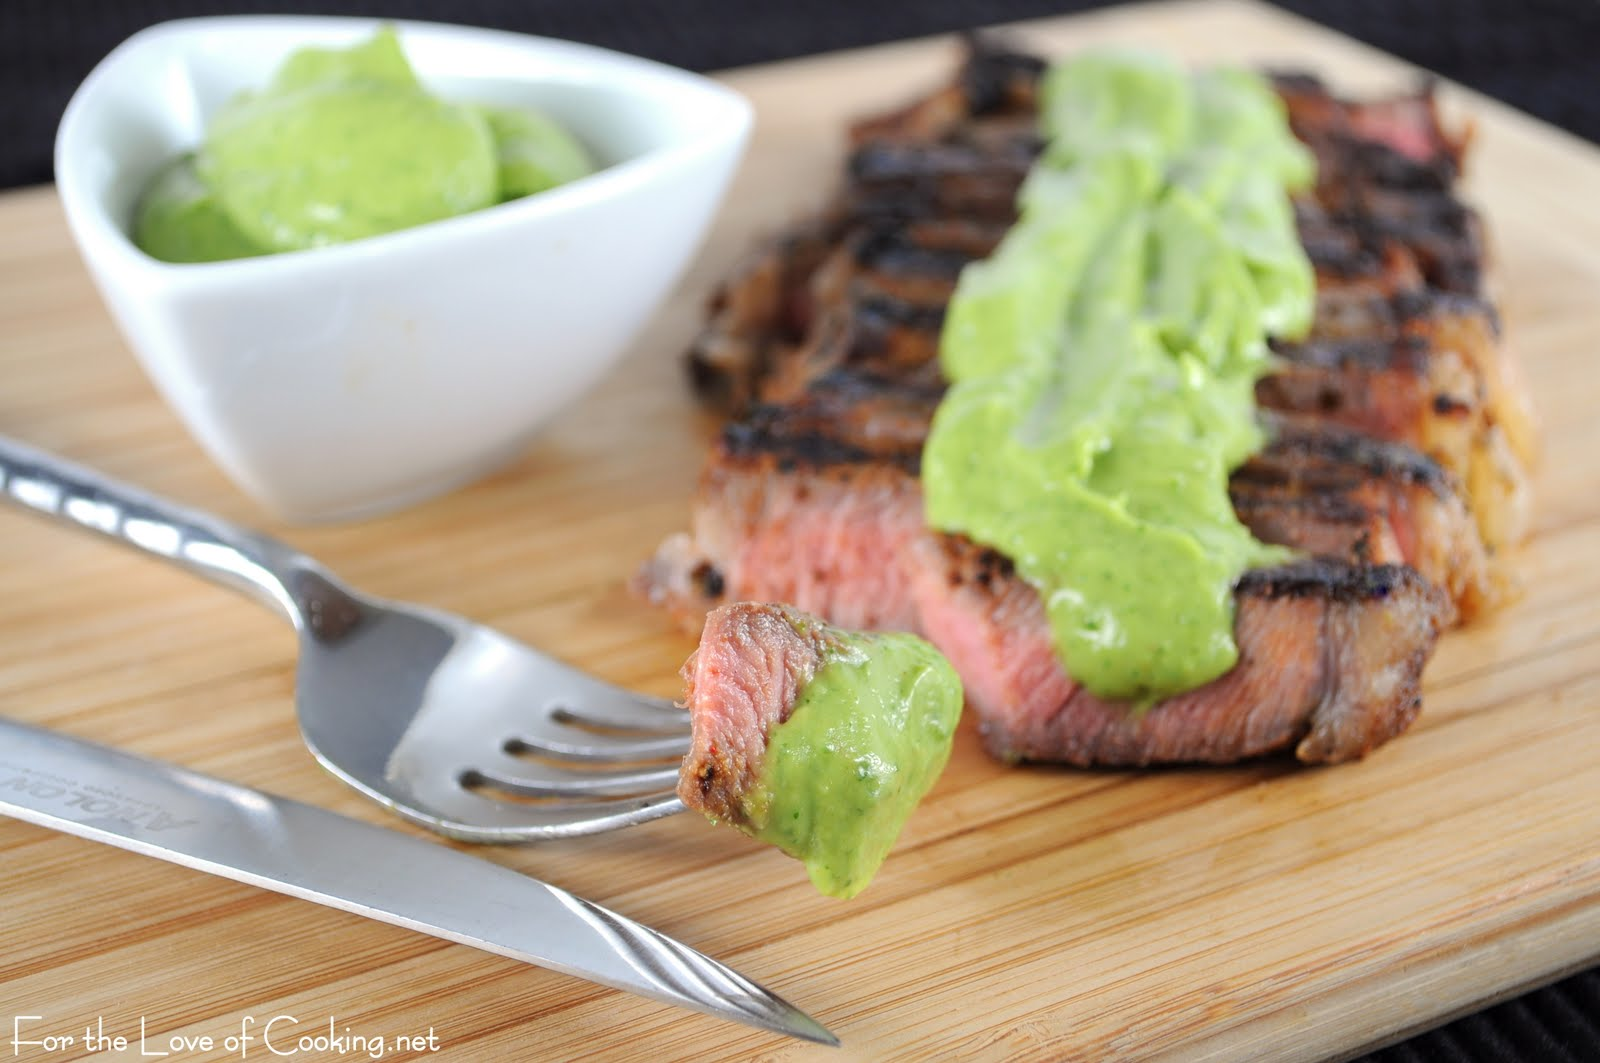 Grilled Steak with Avocado Sauce | For the Love of Cooking